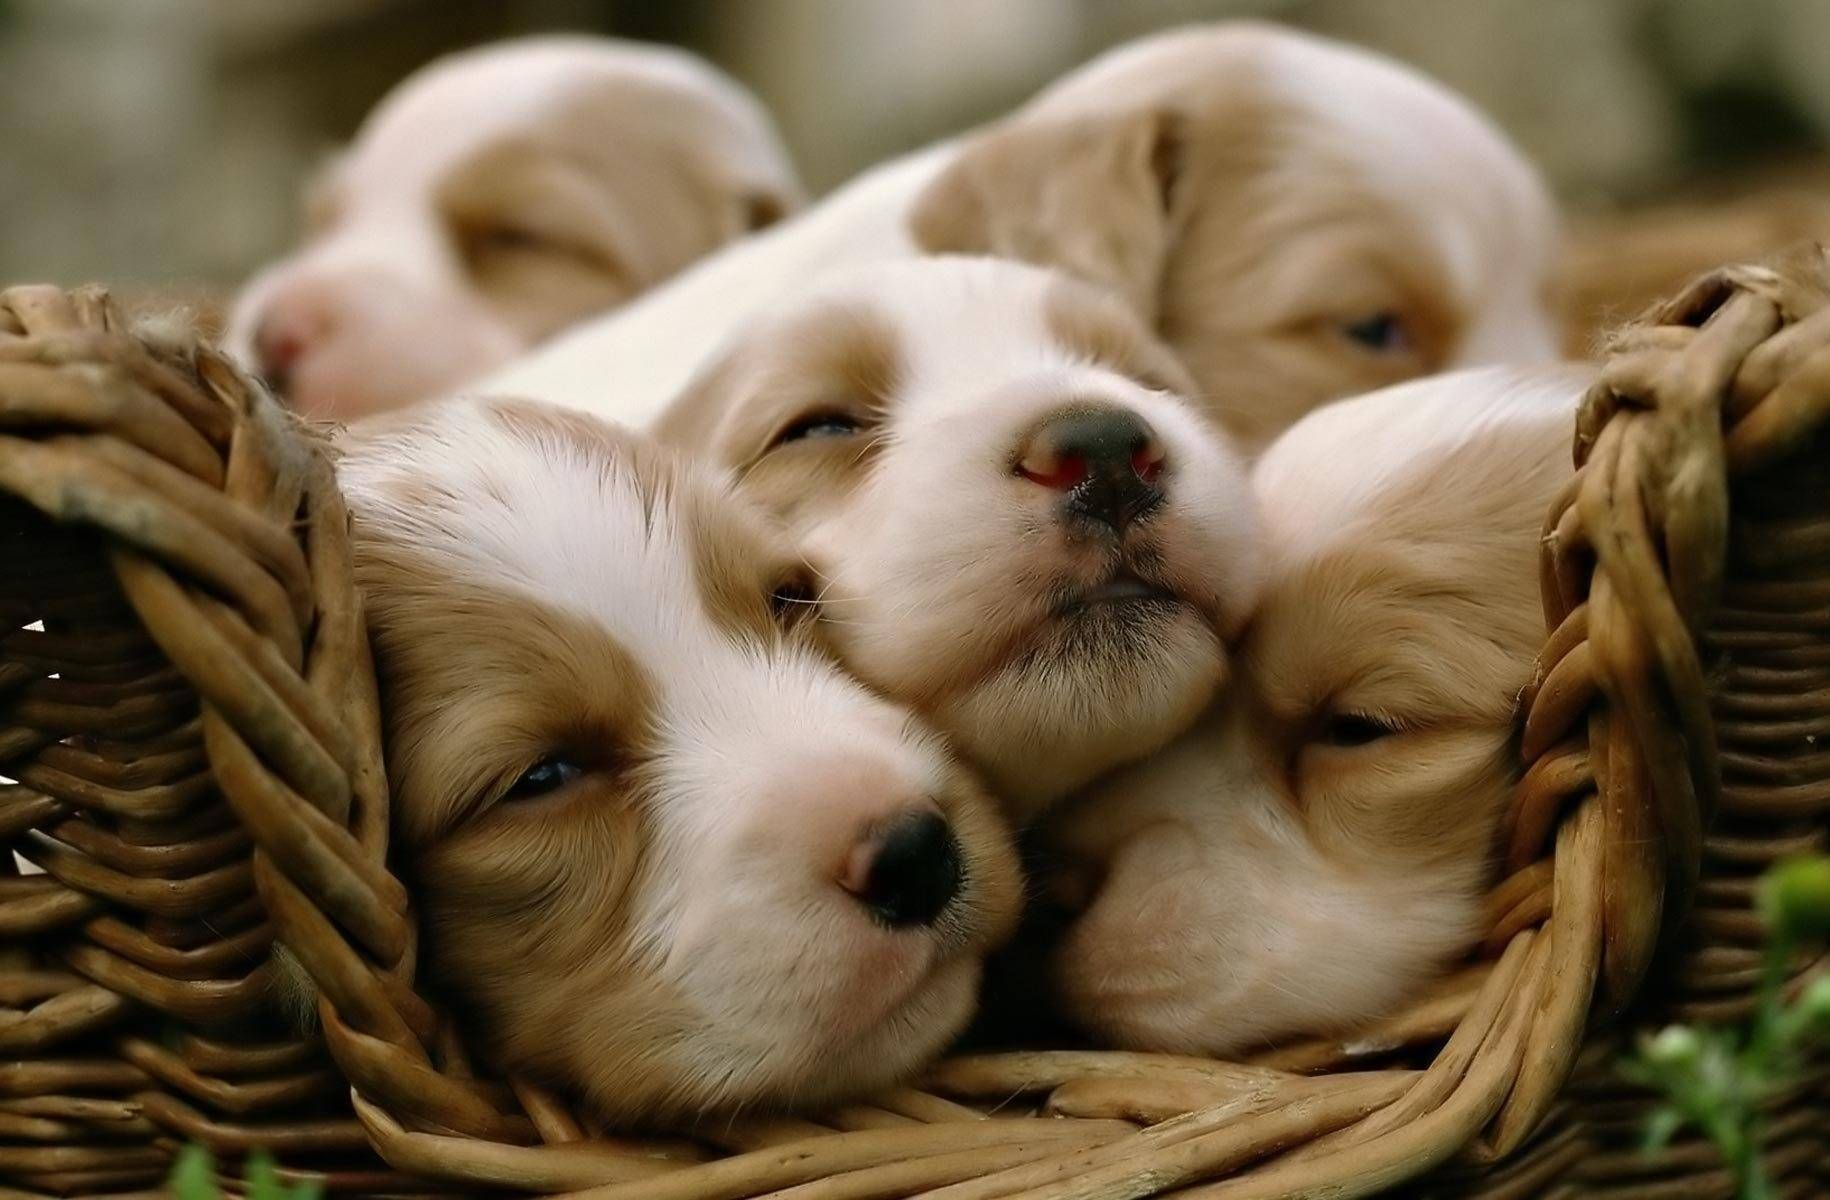 cute puppies & dogs pics | cute puppies, cute sleeping puppies